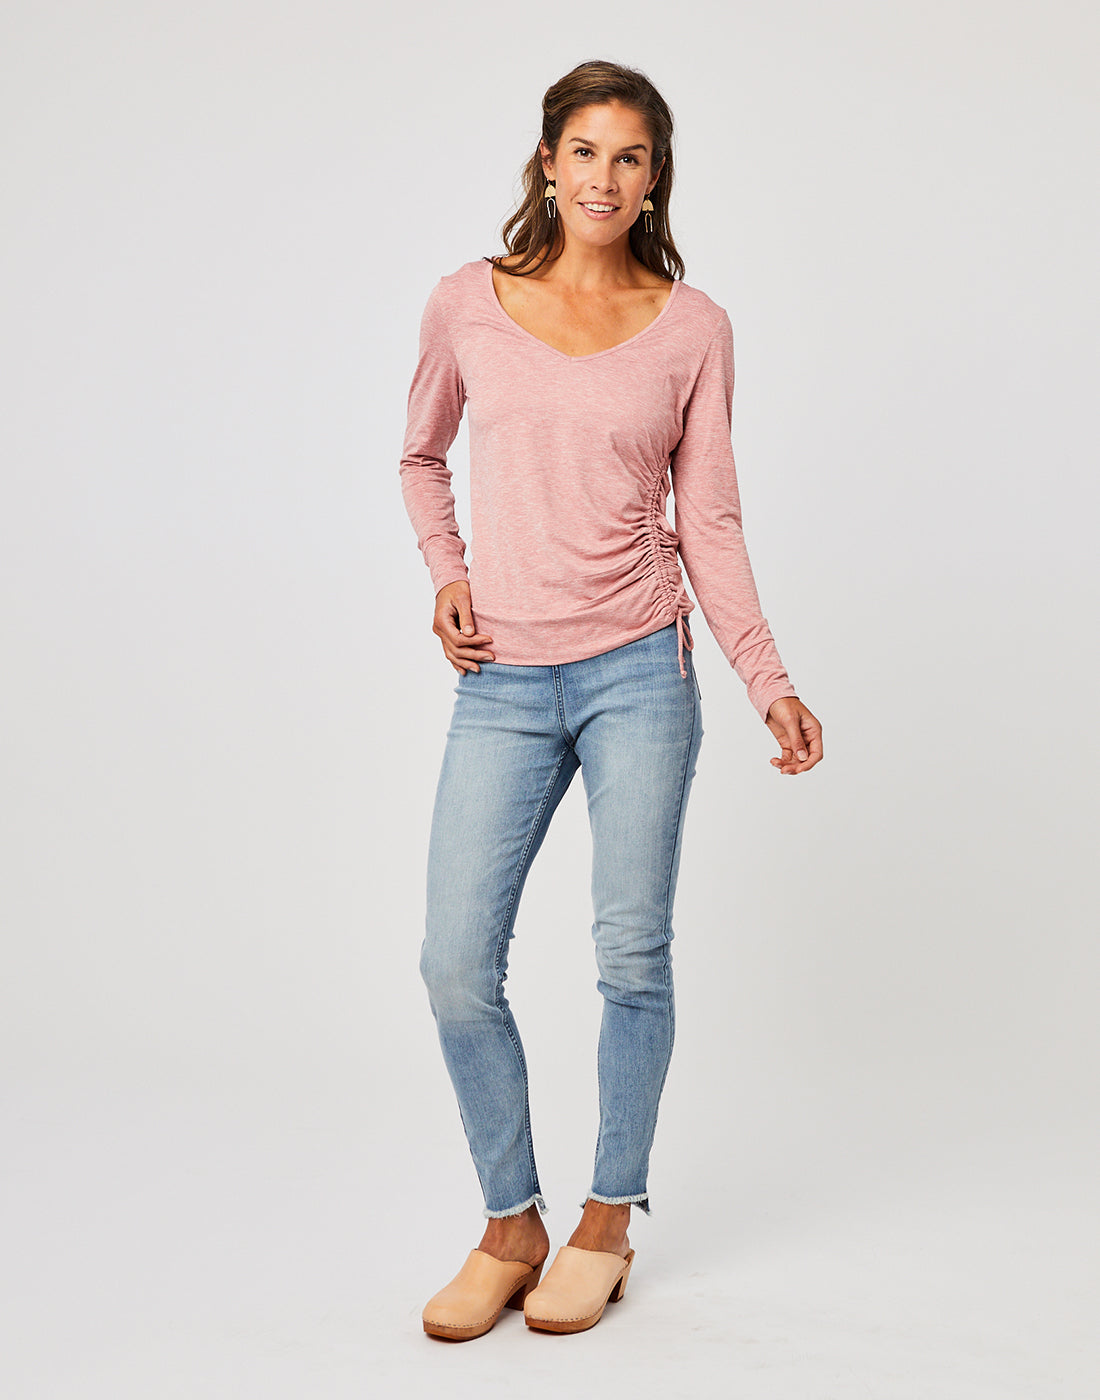 Tilton Top : Rose Heather